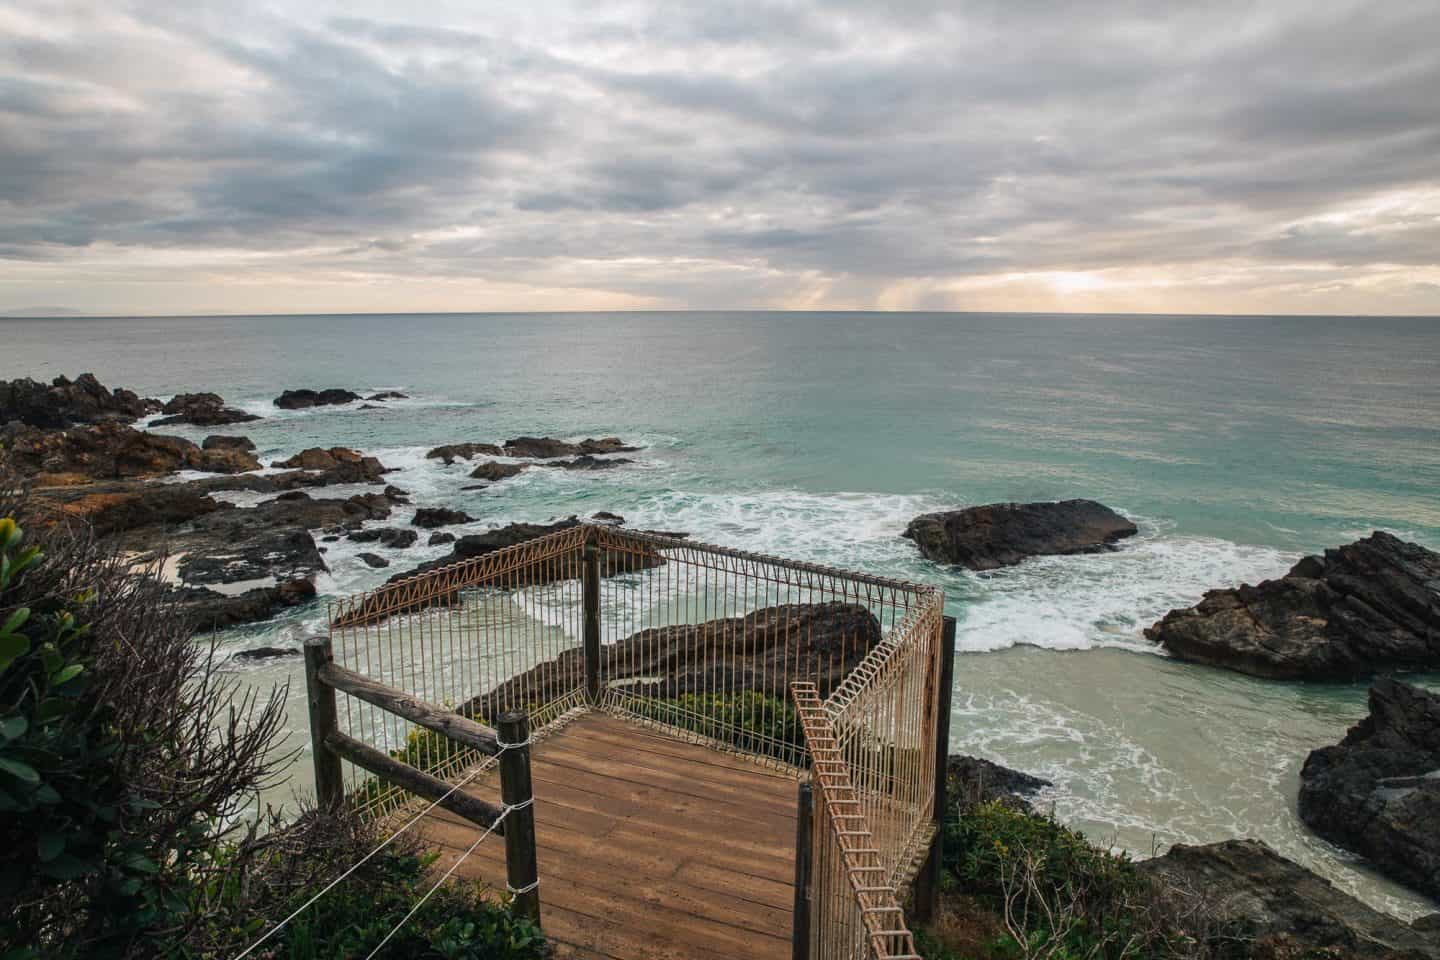 Forster nsw, things to do in forster, what to do in forster, things to do forster, camping in forster, beaches in forster, beaches at forster, burgess beach forster, burgess beach